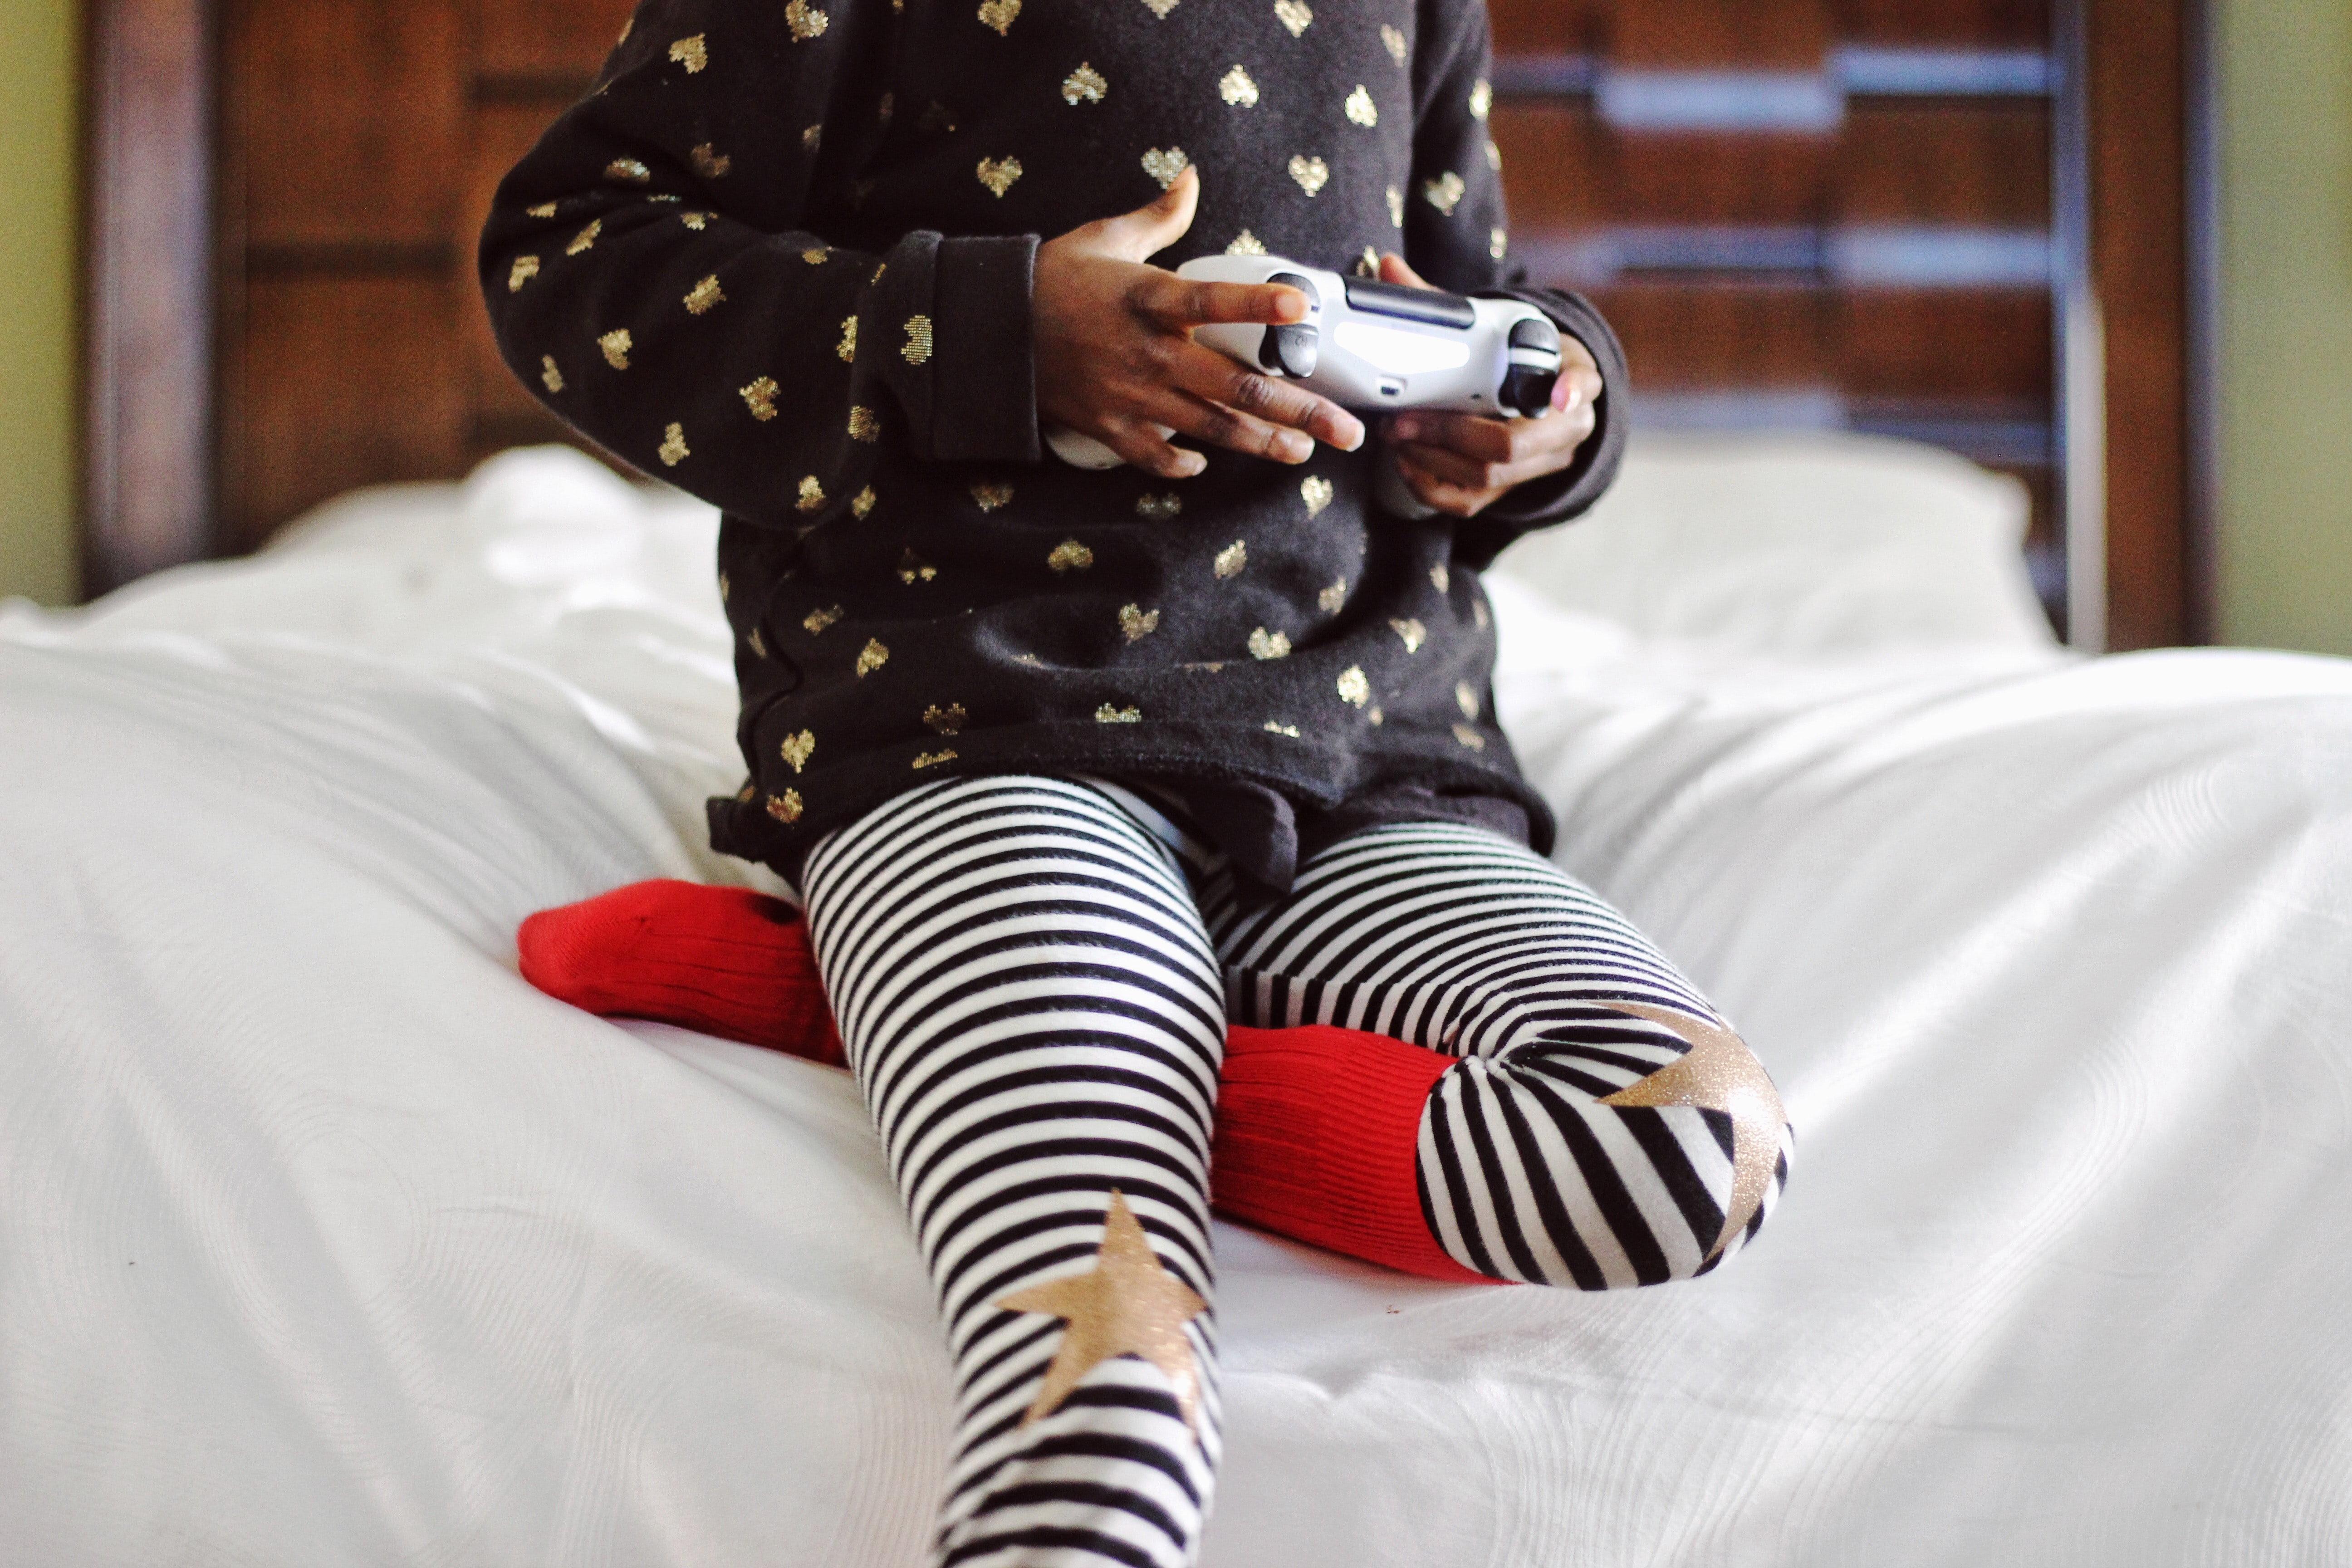 A child in a sweater with a heart pattern holding a white game controller